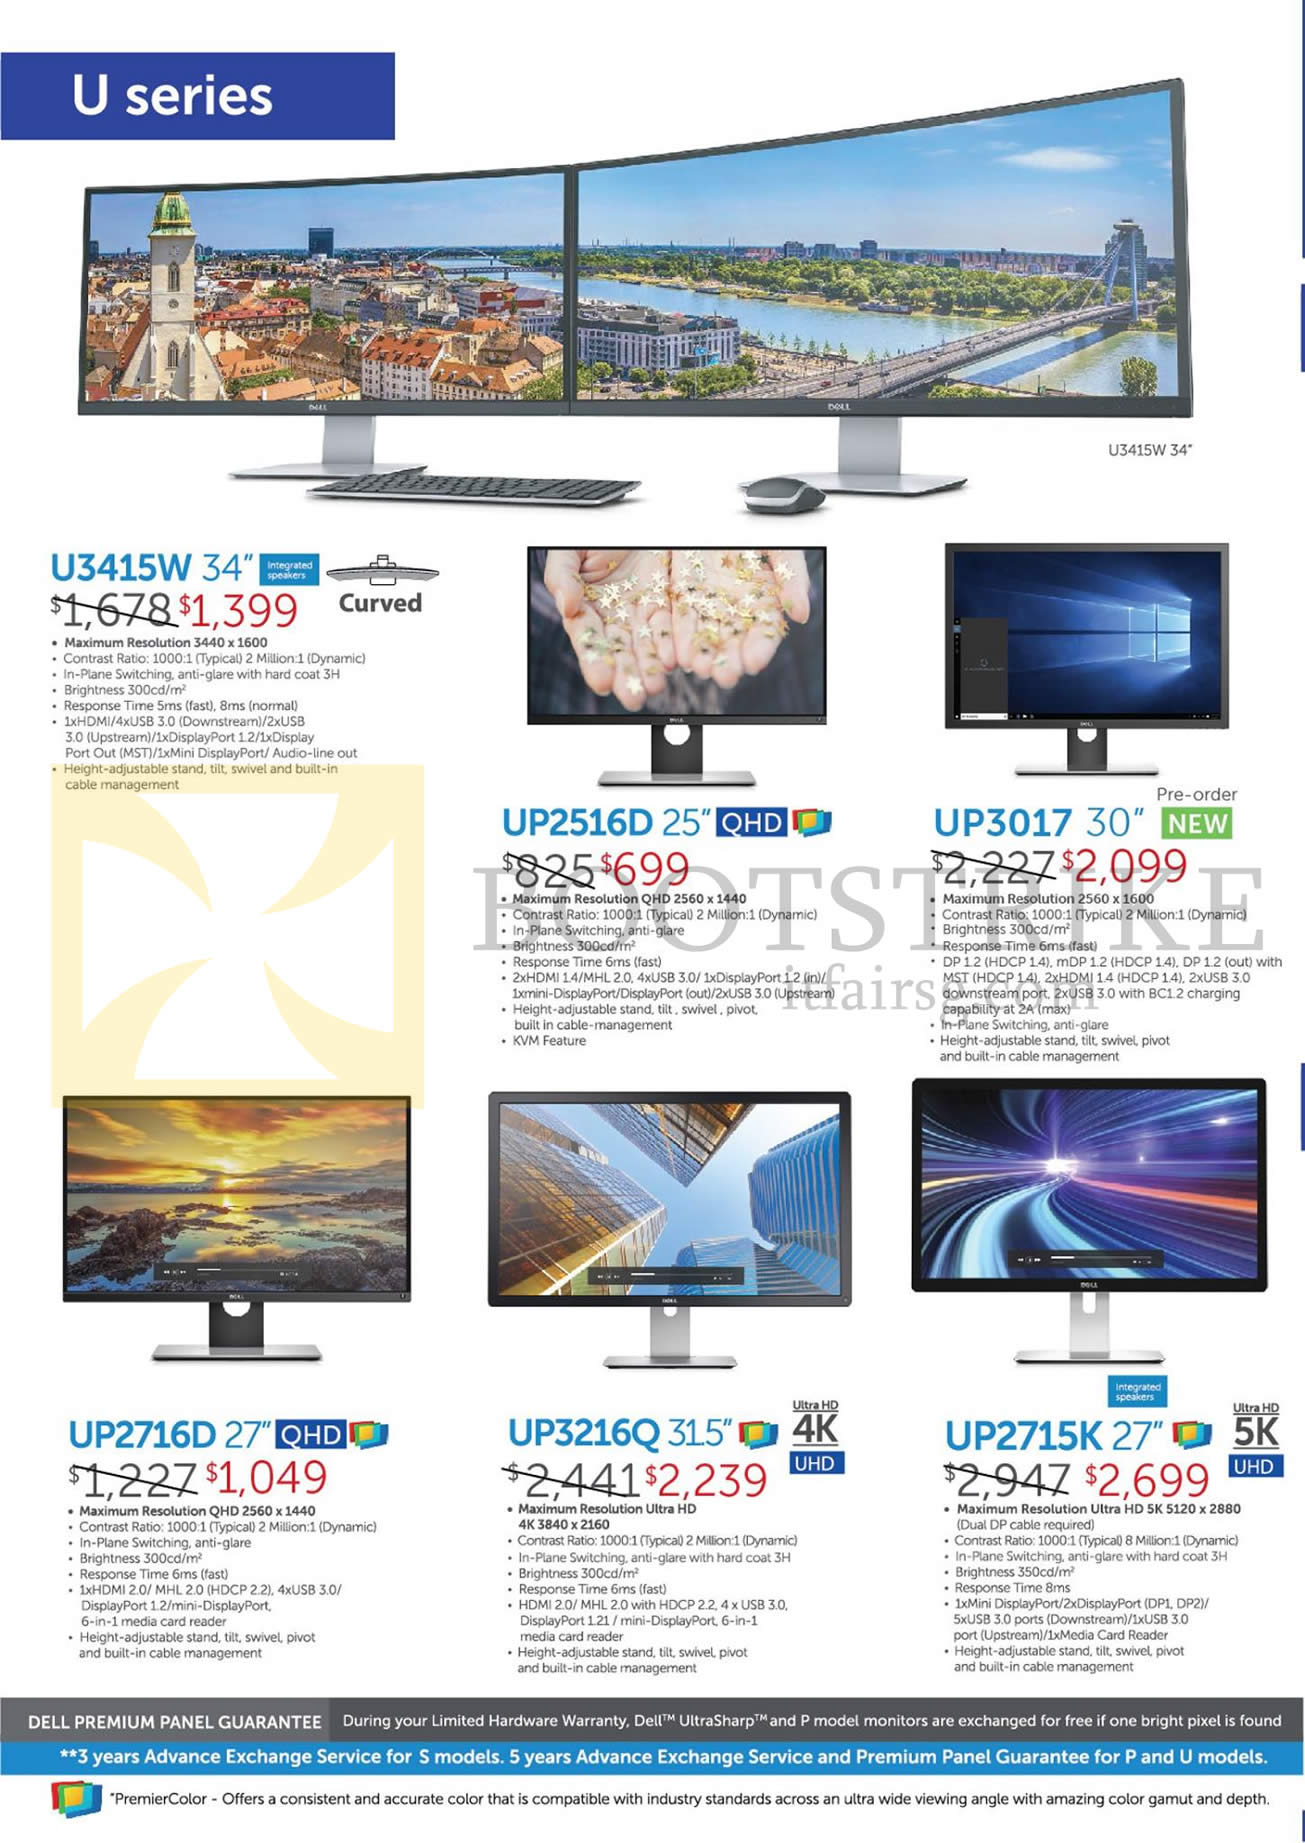 COMEX 2016 price list image brochure of Dell Monitors Curved UHD 4K U3415W, UP2516D, UP3017, UP2716D, UP3216Q, UP2715K